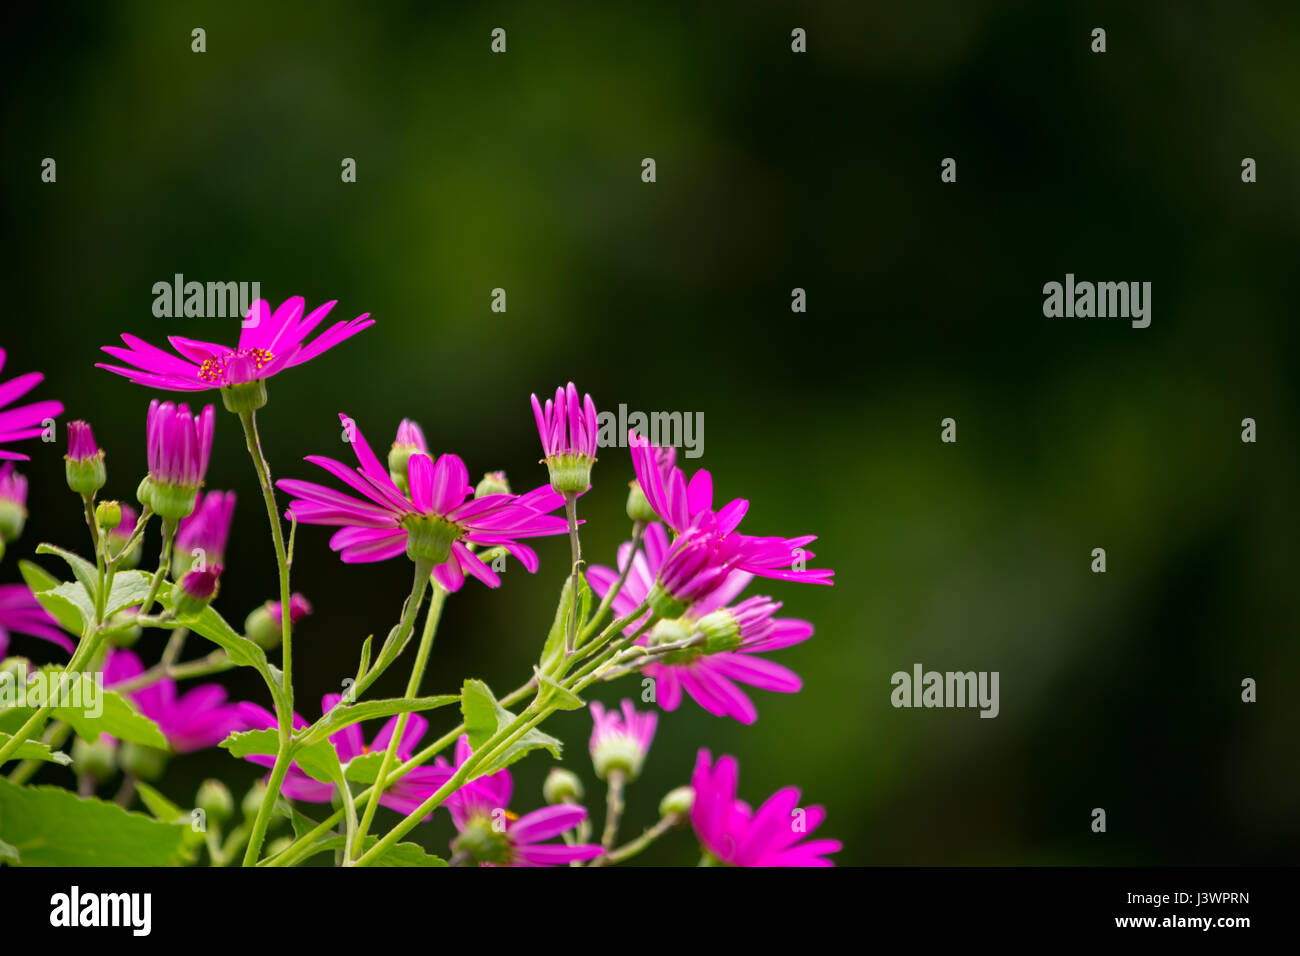 Magenta flowers with a blurred background - Stock Image